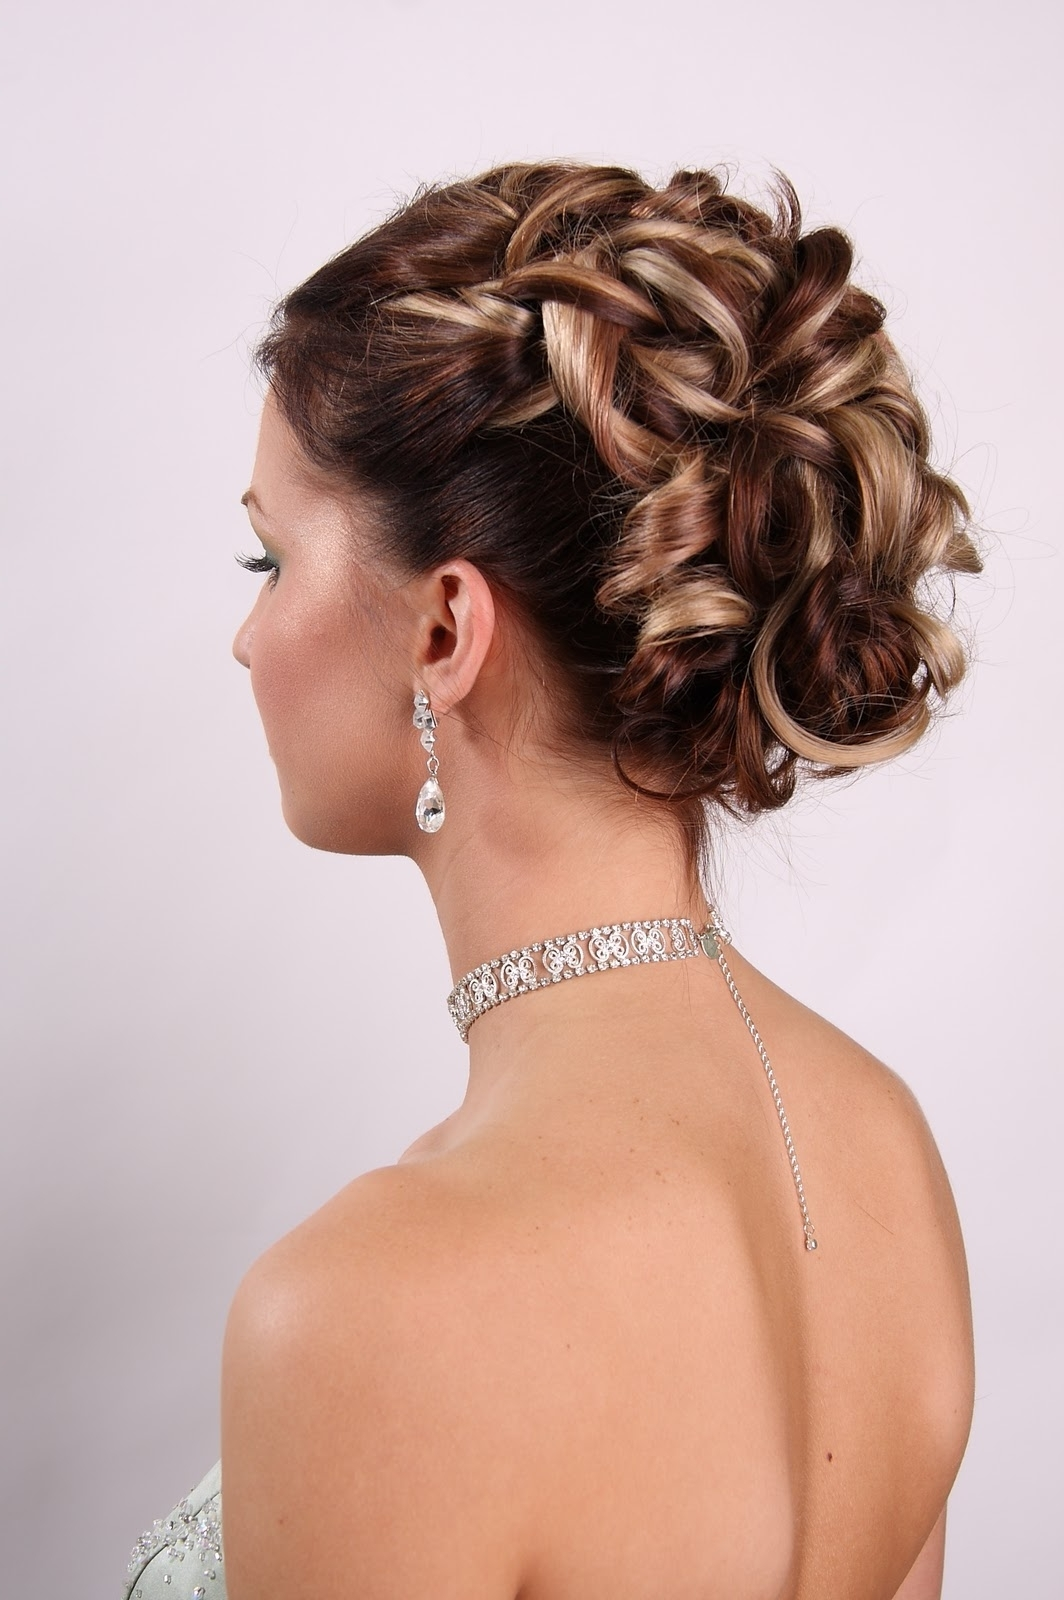 Short Hair Wedding Updos – Hairstyle For Women & Man Inside Wedding Hairstyles For Short Hair Updos (View 10 of 15)